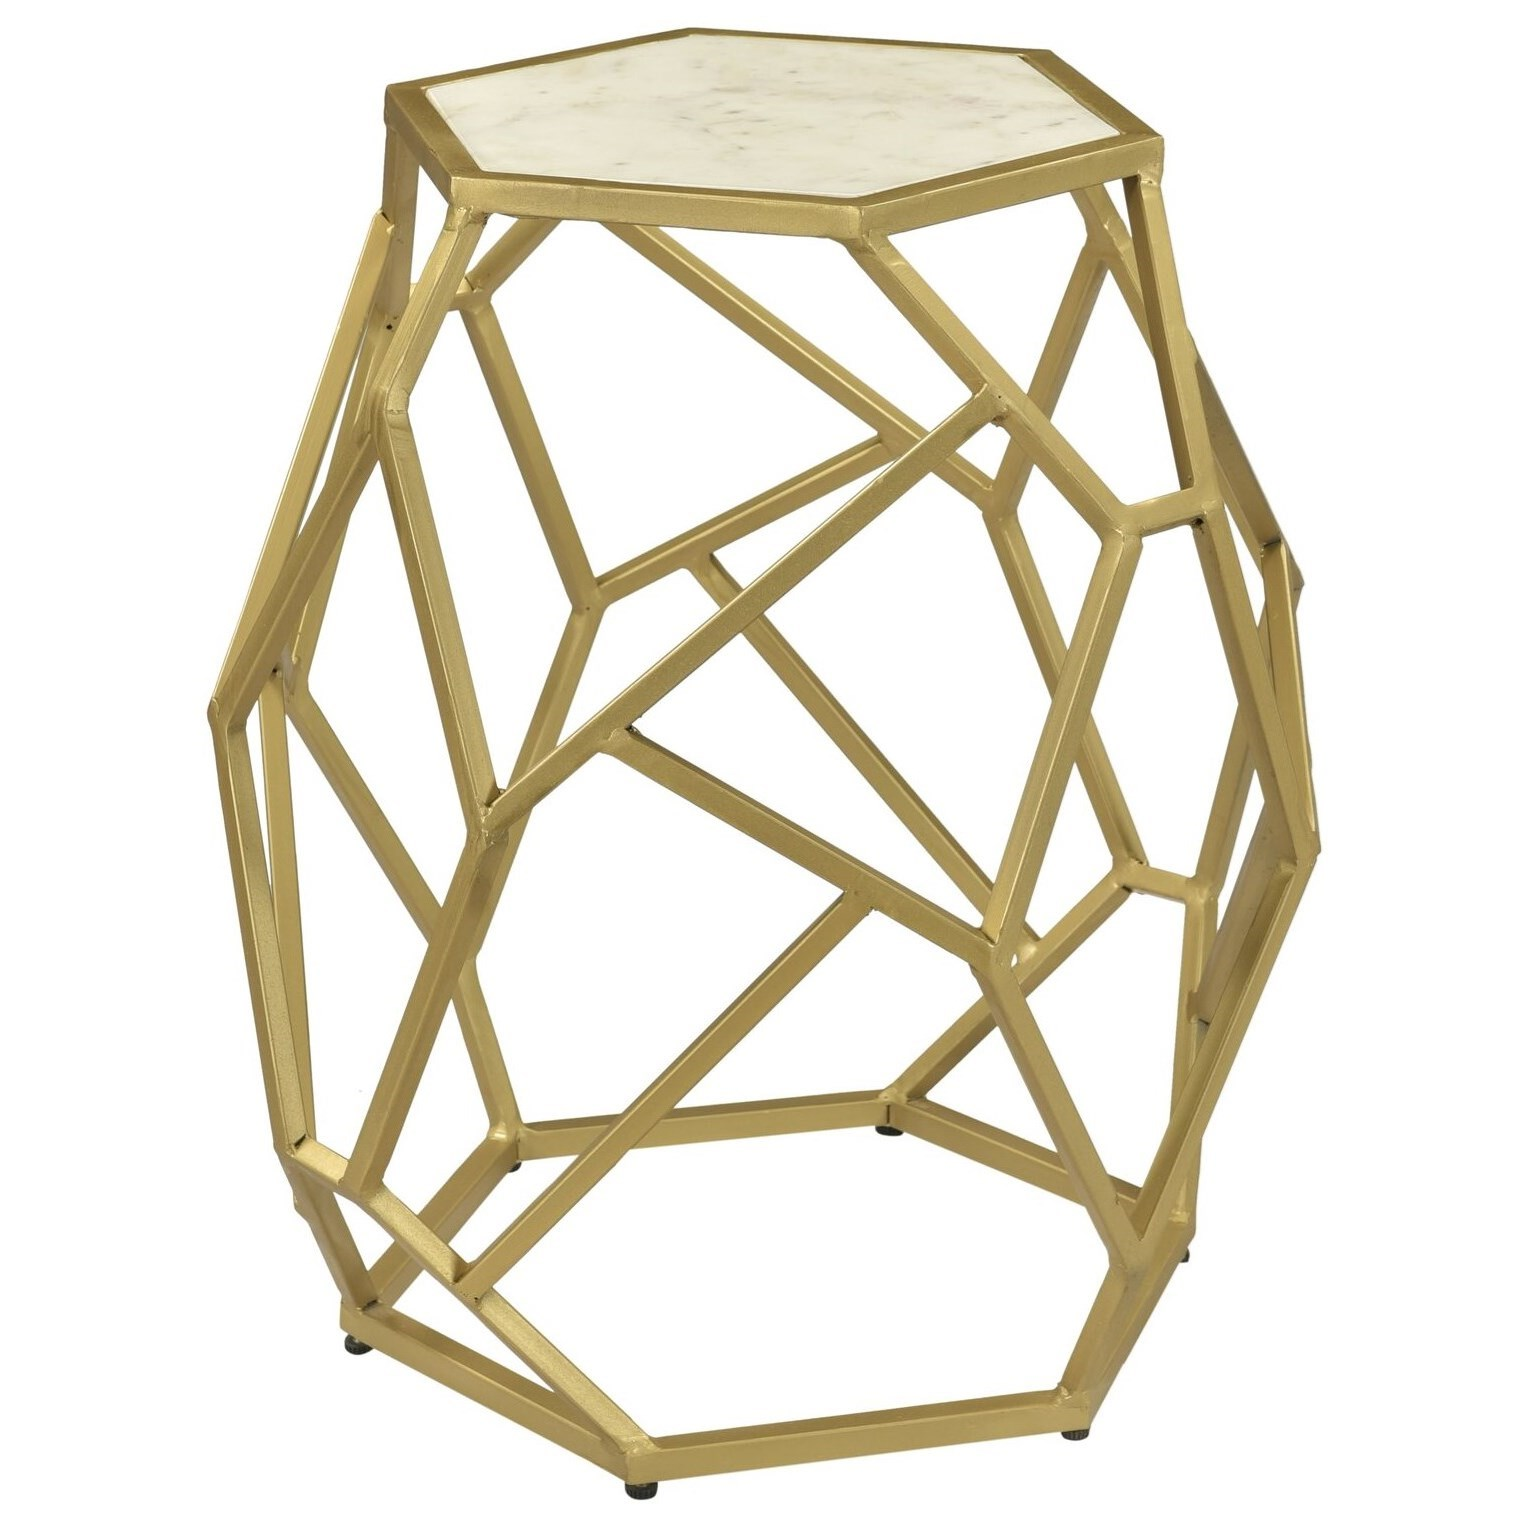 Coast to Coast Accents Hexagonal Accent Table by Coast to Coast Imports at Bullard Furniture